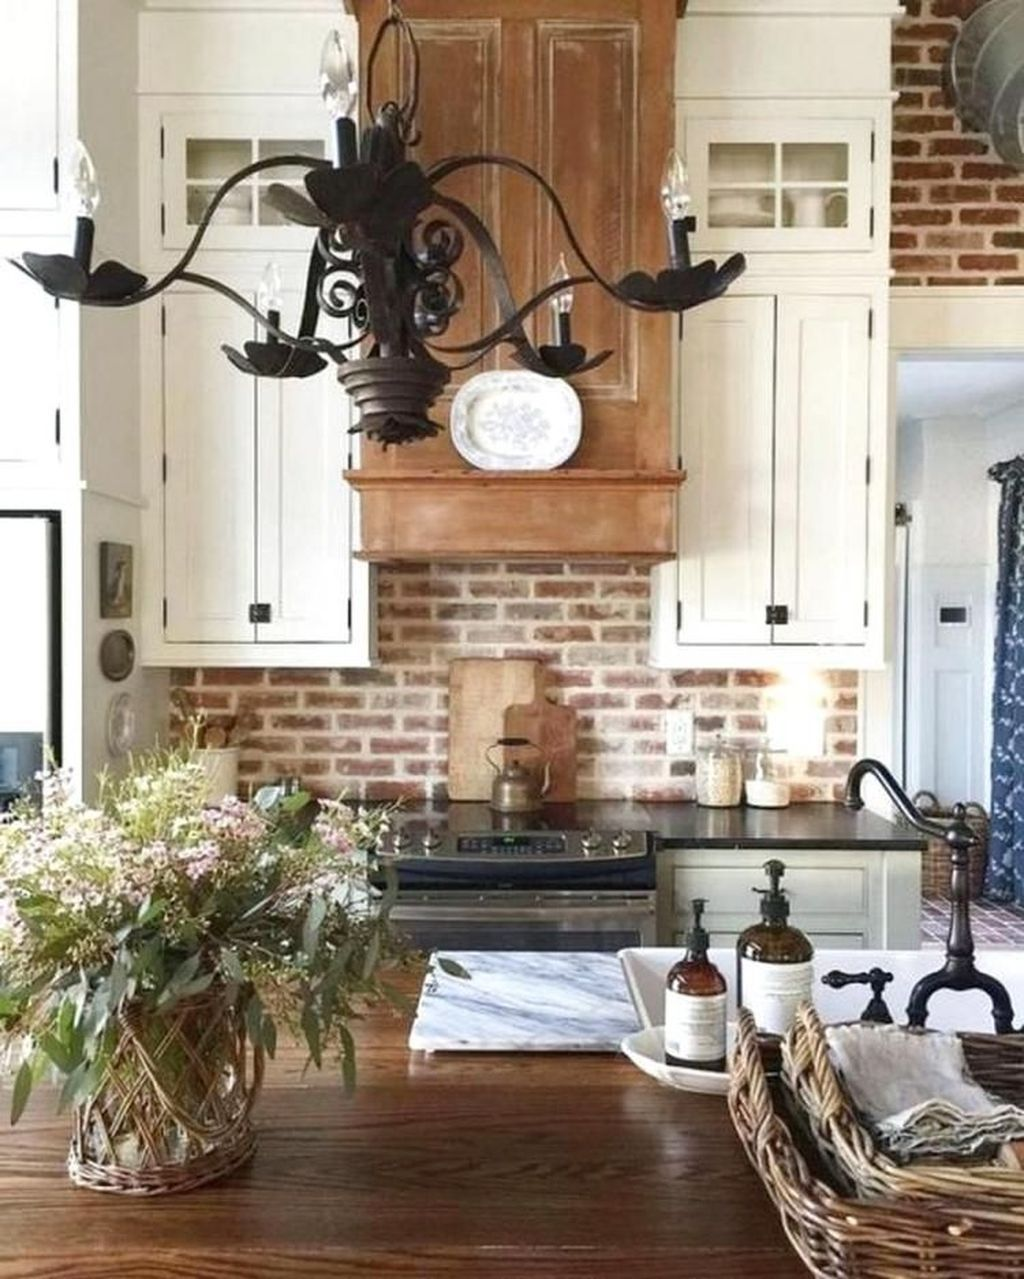 40 Lovely Rustic Western Style Kitchen Decorations Ideas In 2020 Rustic Country Kitchens Rustic Farmhouse Kitchen Rustic Kitchen Cabinets